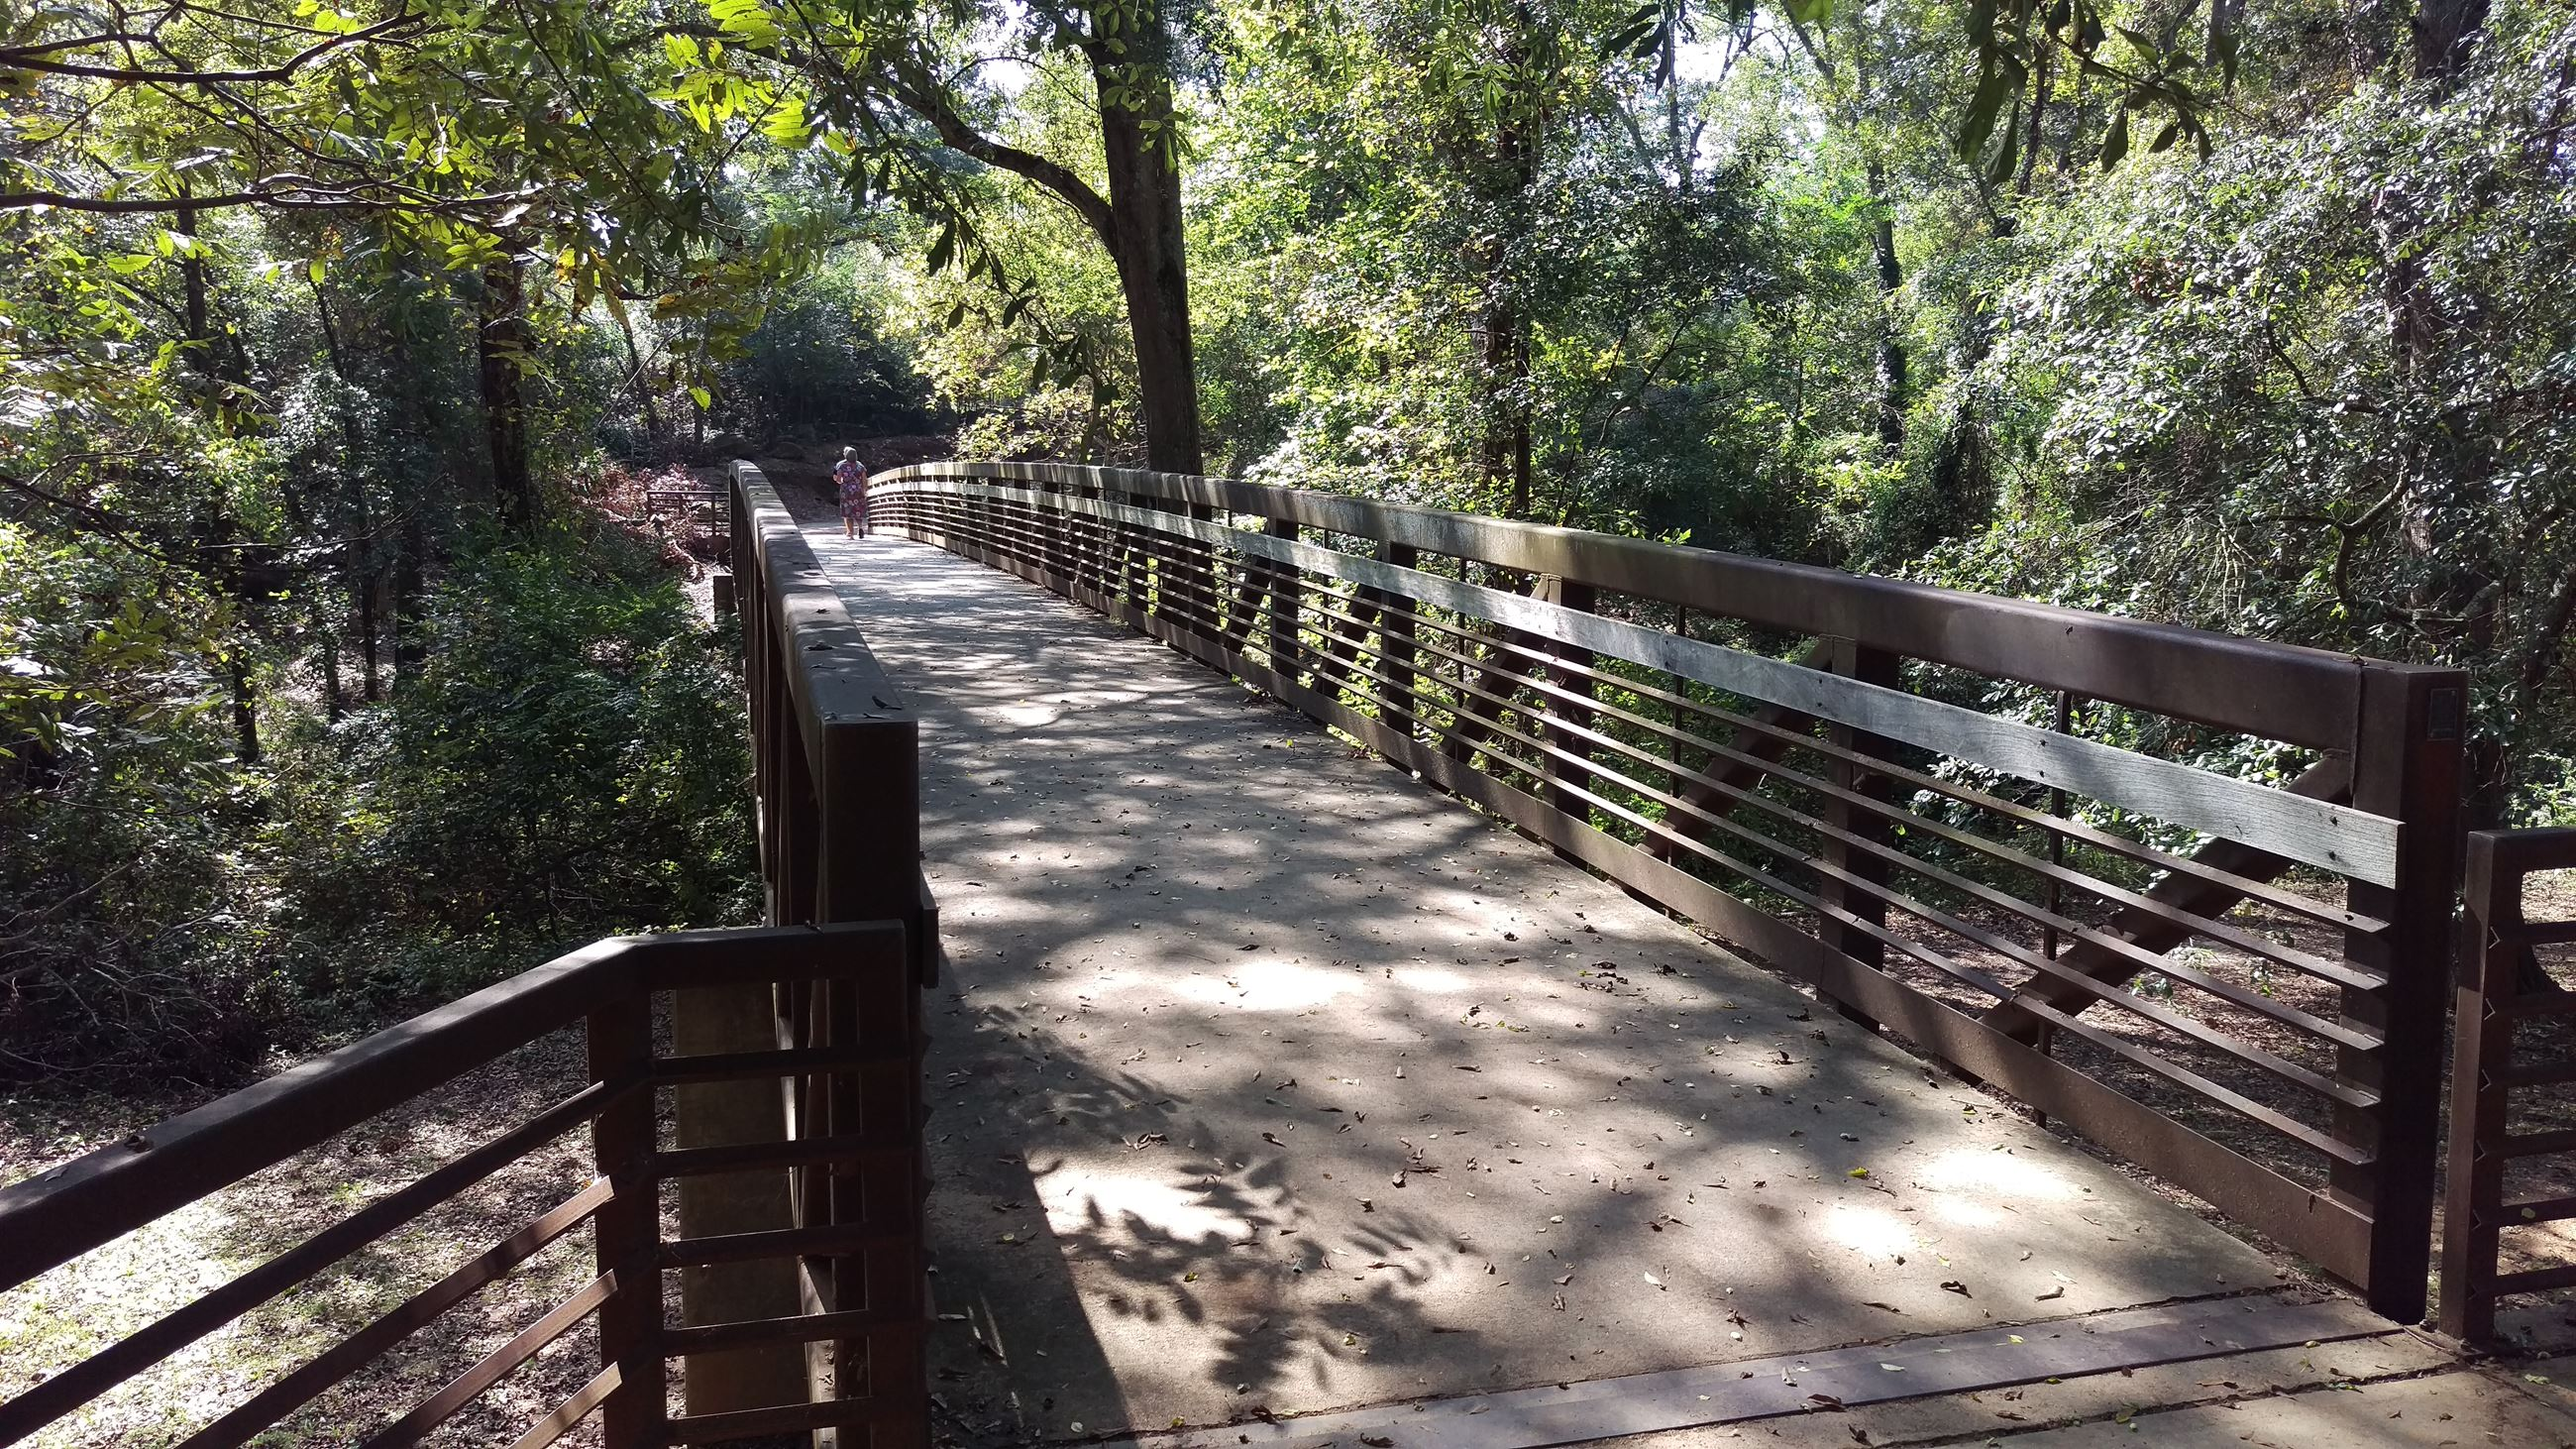 Photo of the Greenway Bridge crossing Trail Creek in Dudley Park.